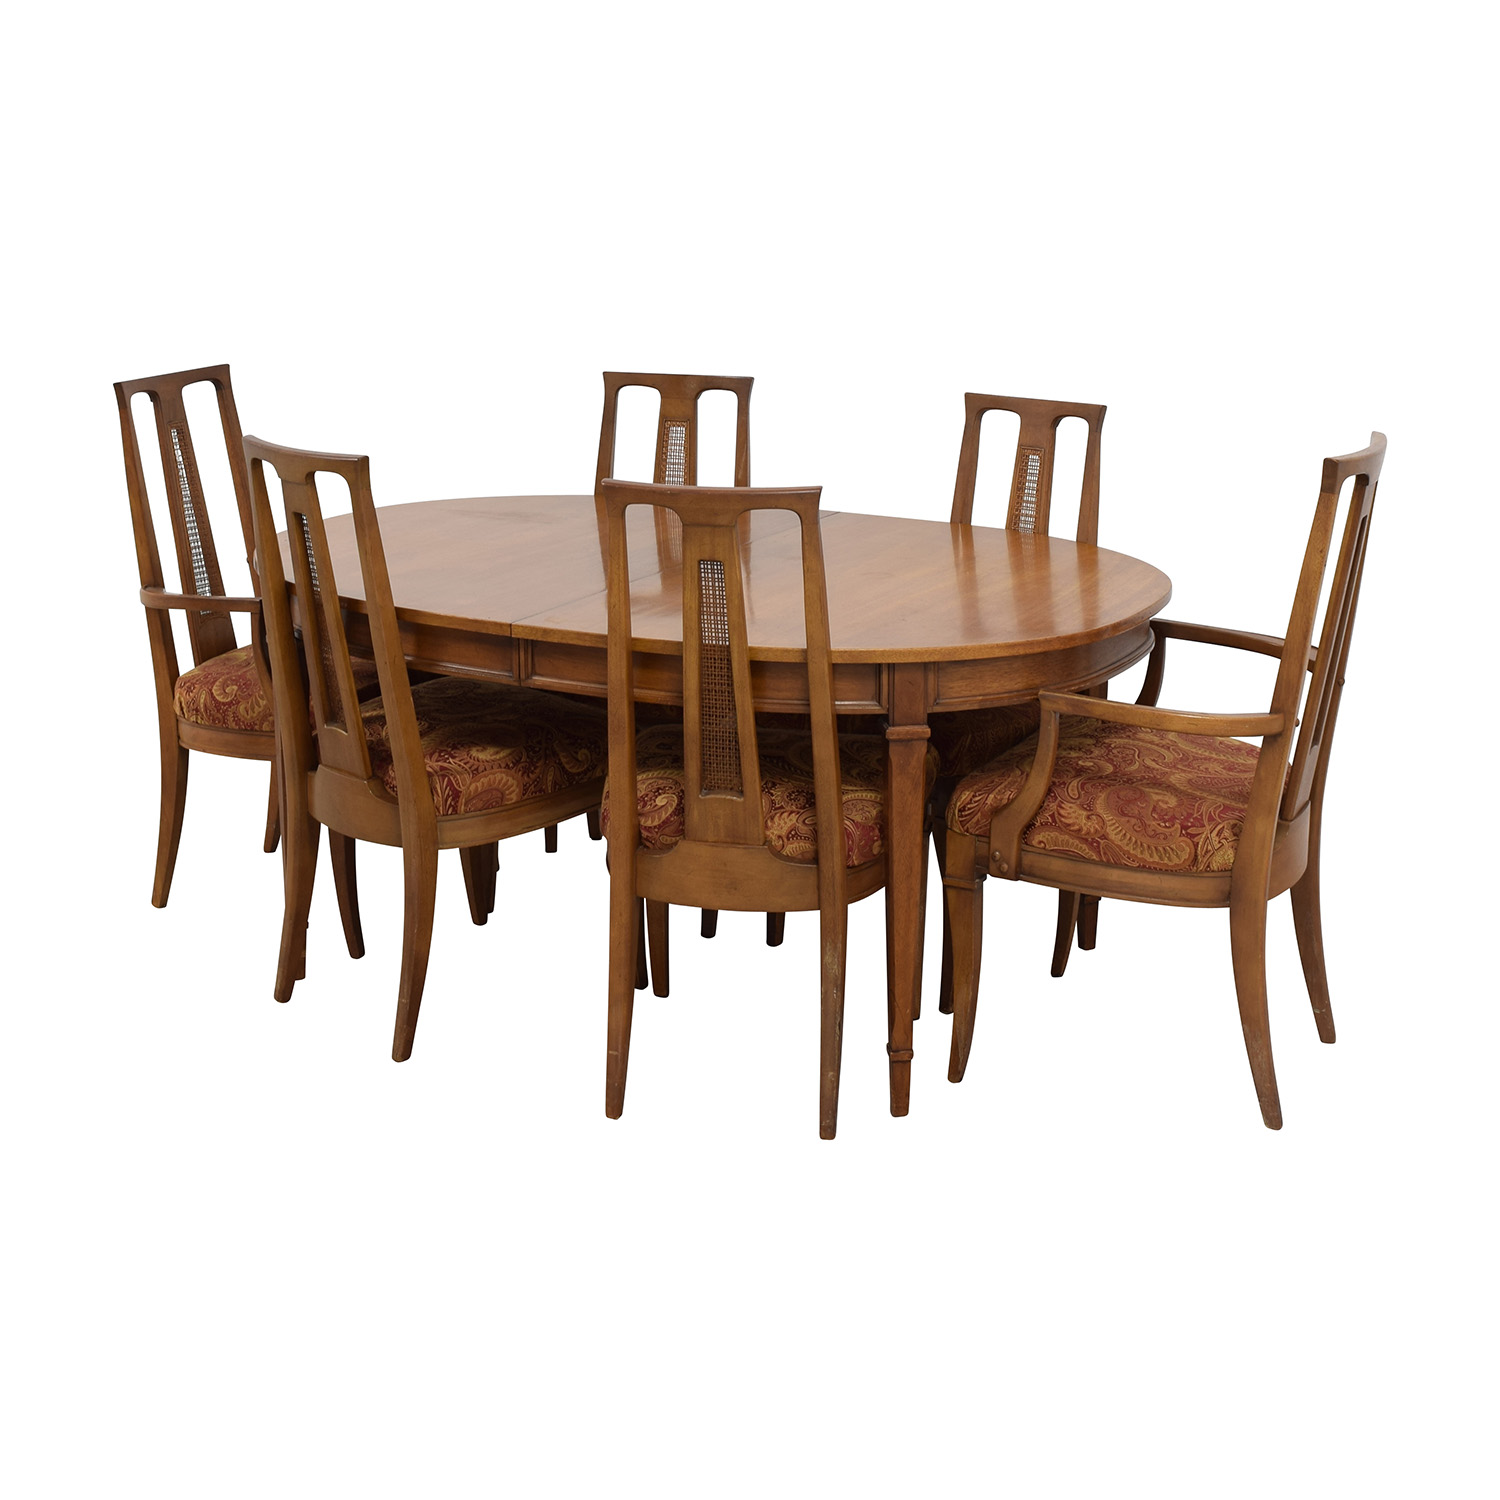 90 Off Mid Century Oval Dining Set Tables